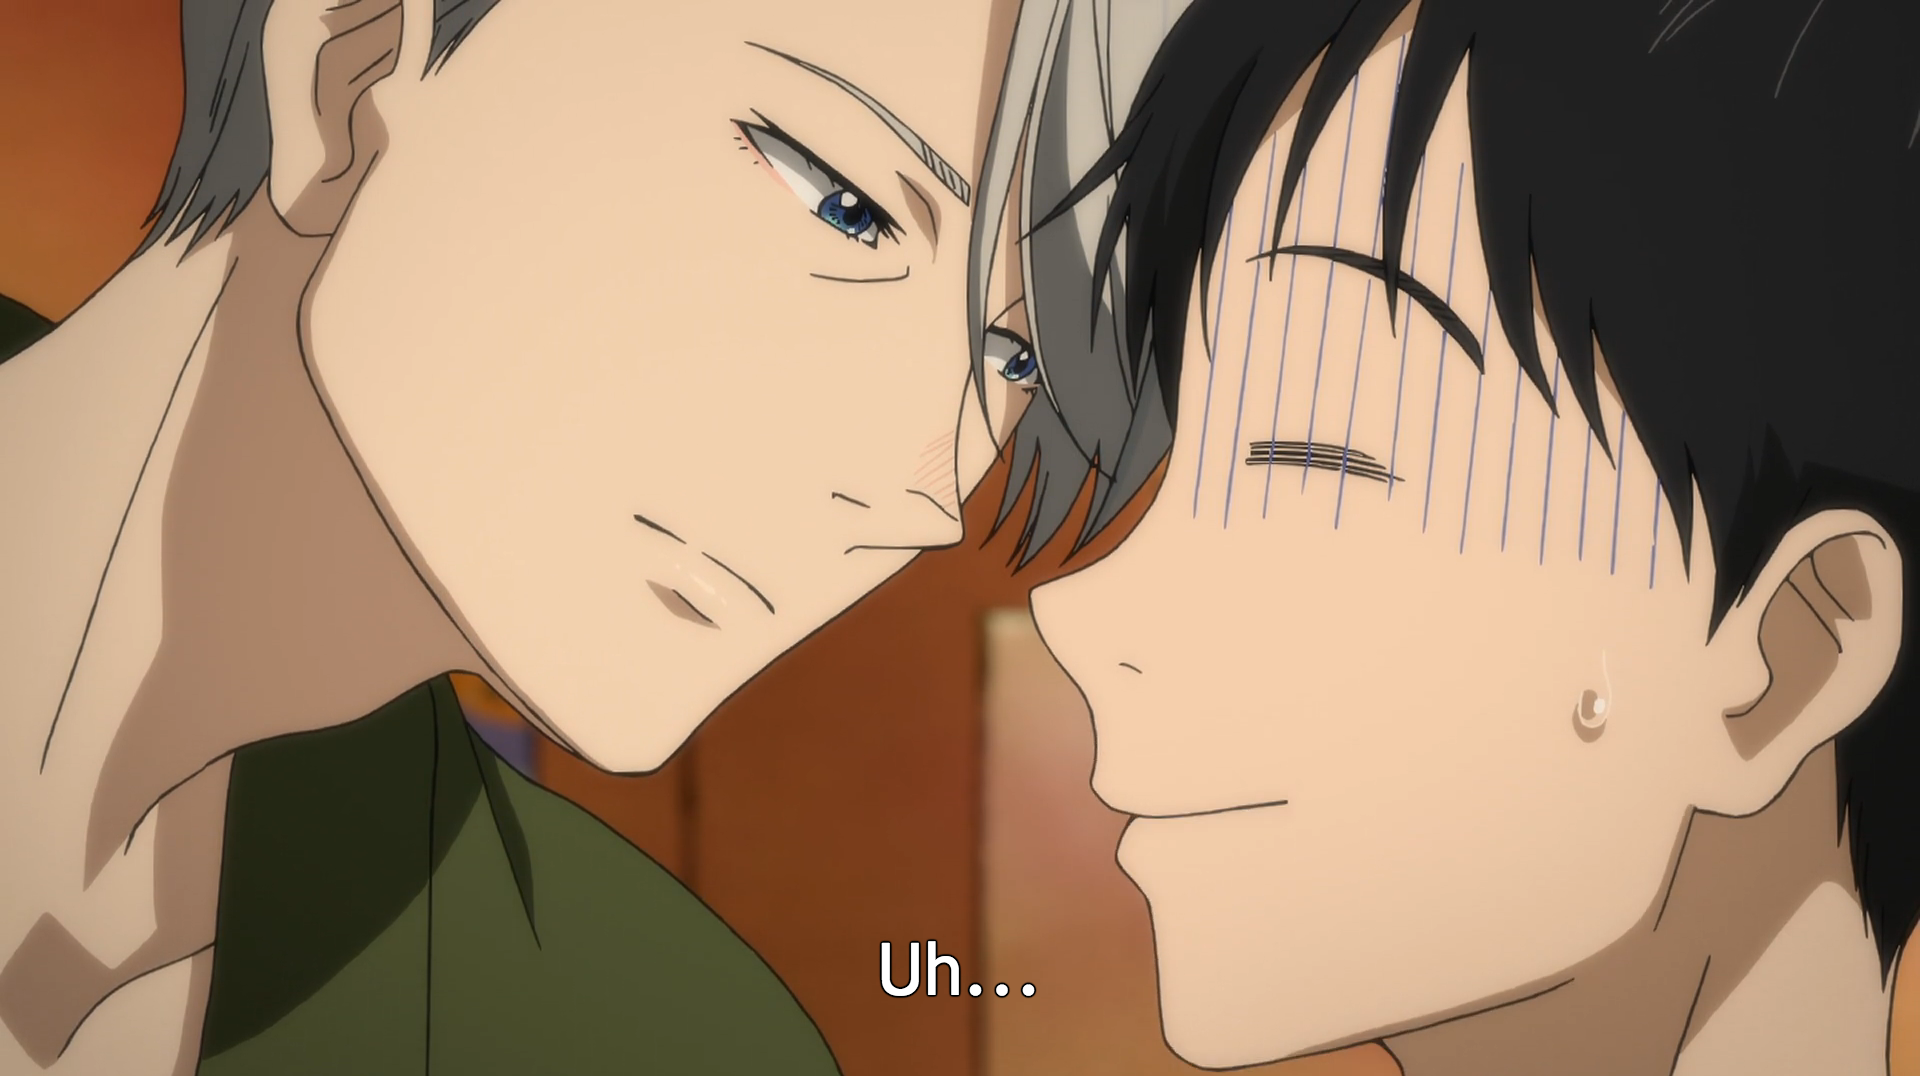 Why People Are Hyped About A Male Figure Skating Anime